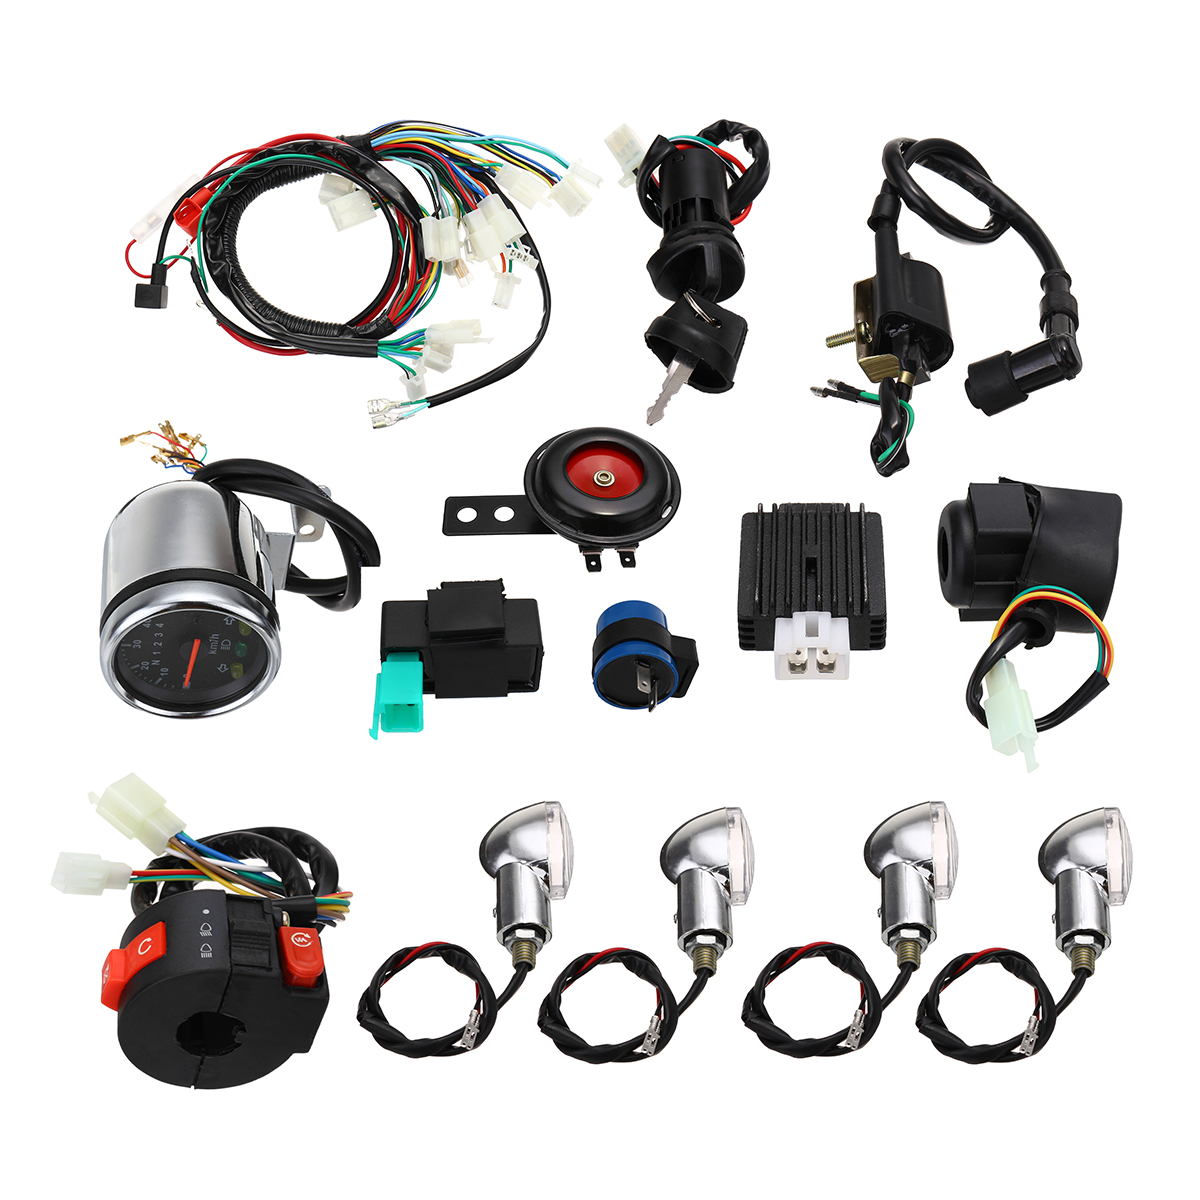 Full Electric Start Engine Wiring Harness Loom For Cdi 110cc 125cc Pit Bike Ignition Kit Coil Killswitch Electrics Quad Atv